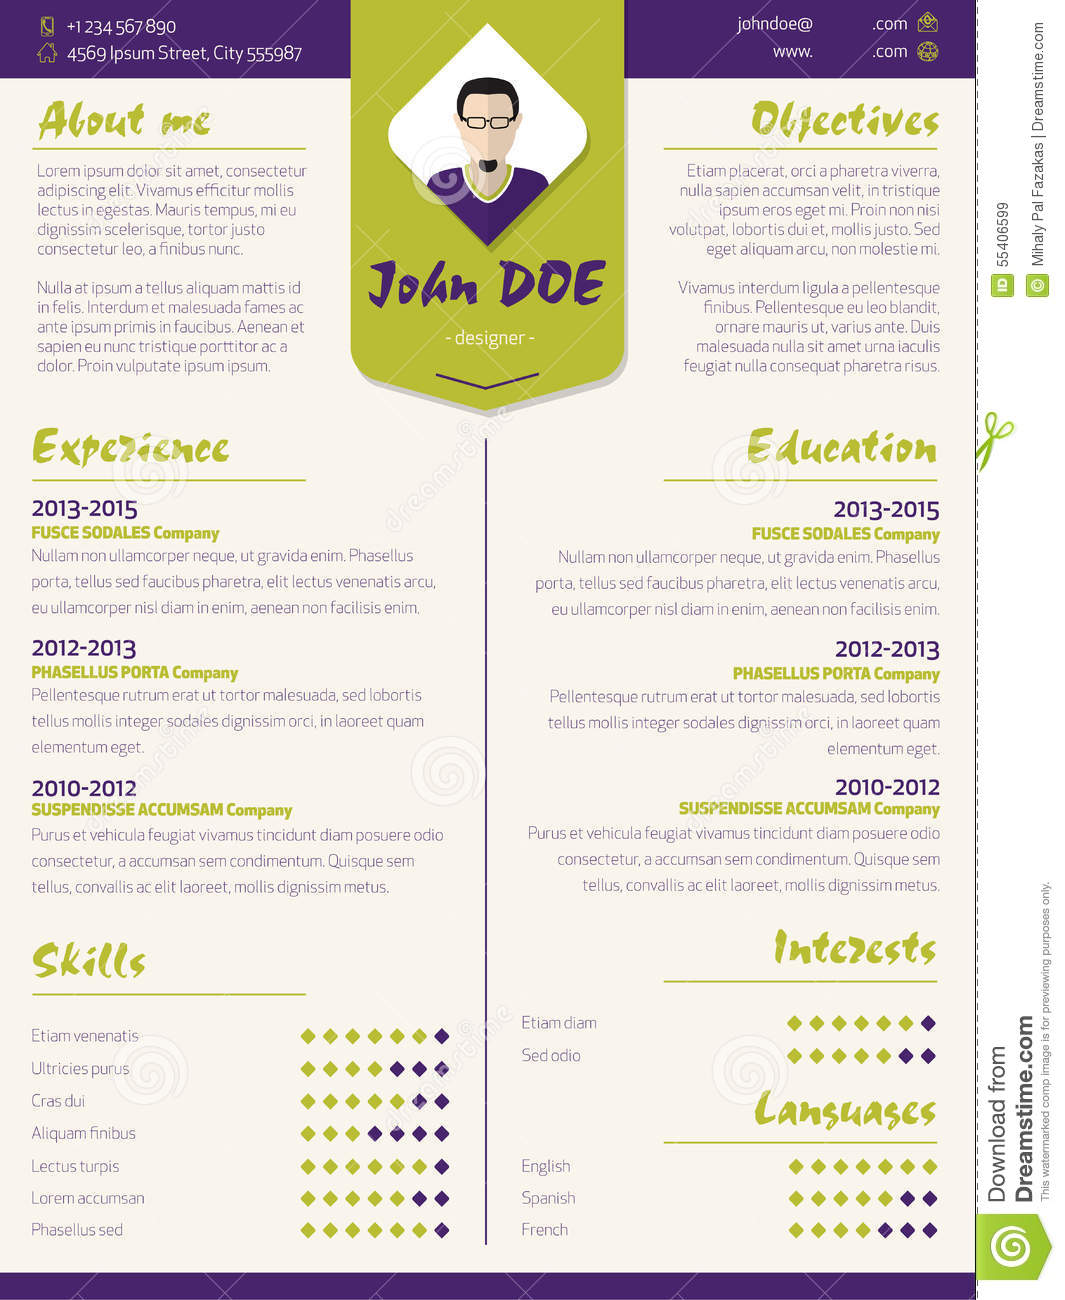 colorful modern resume curriculum vitae template with design ele - Elements Of A Resume